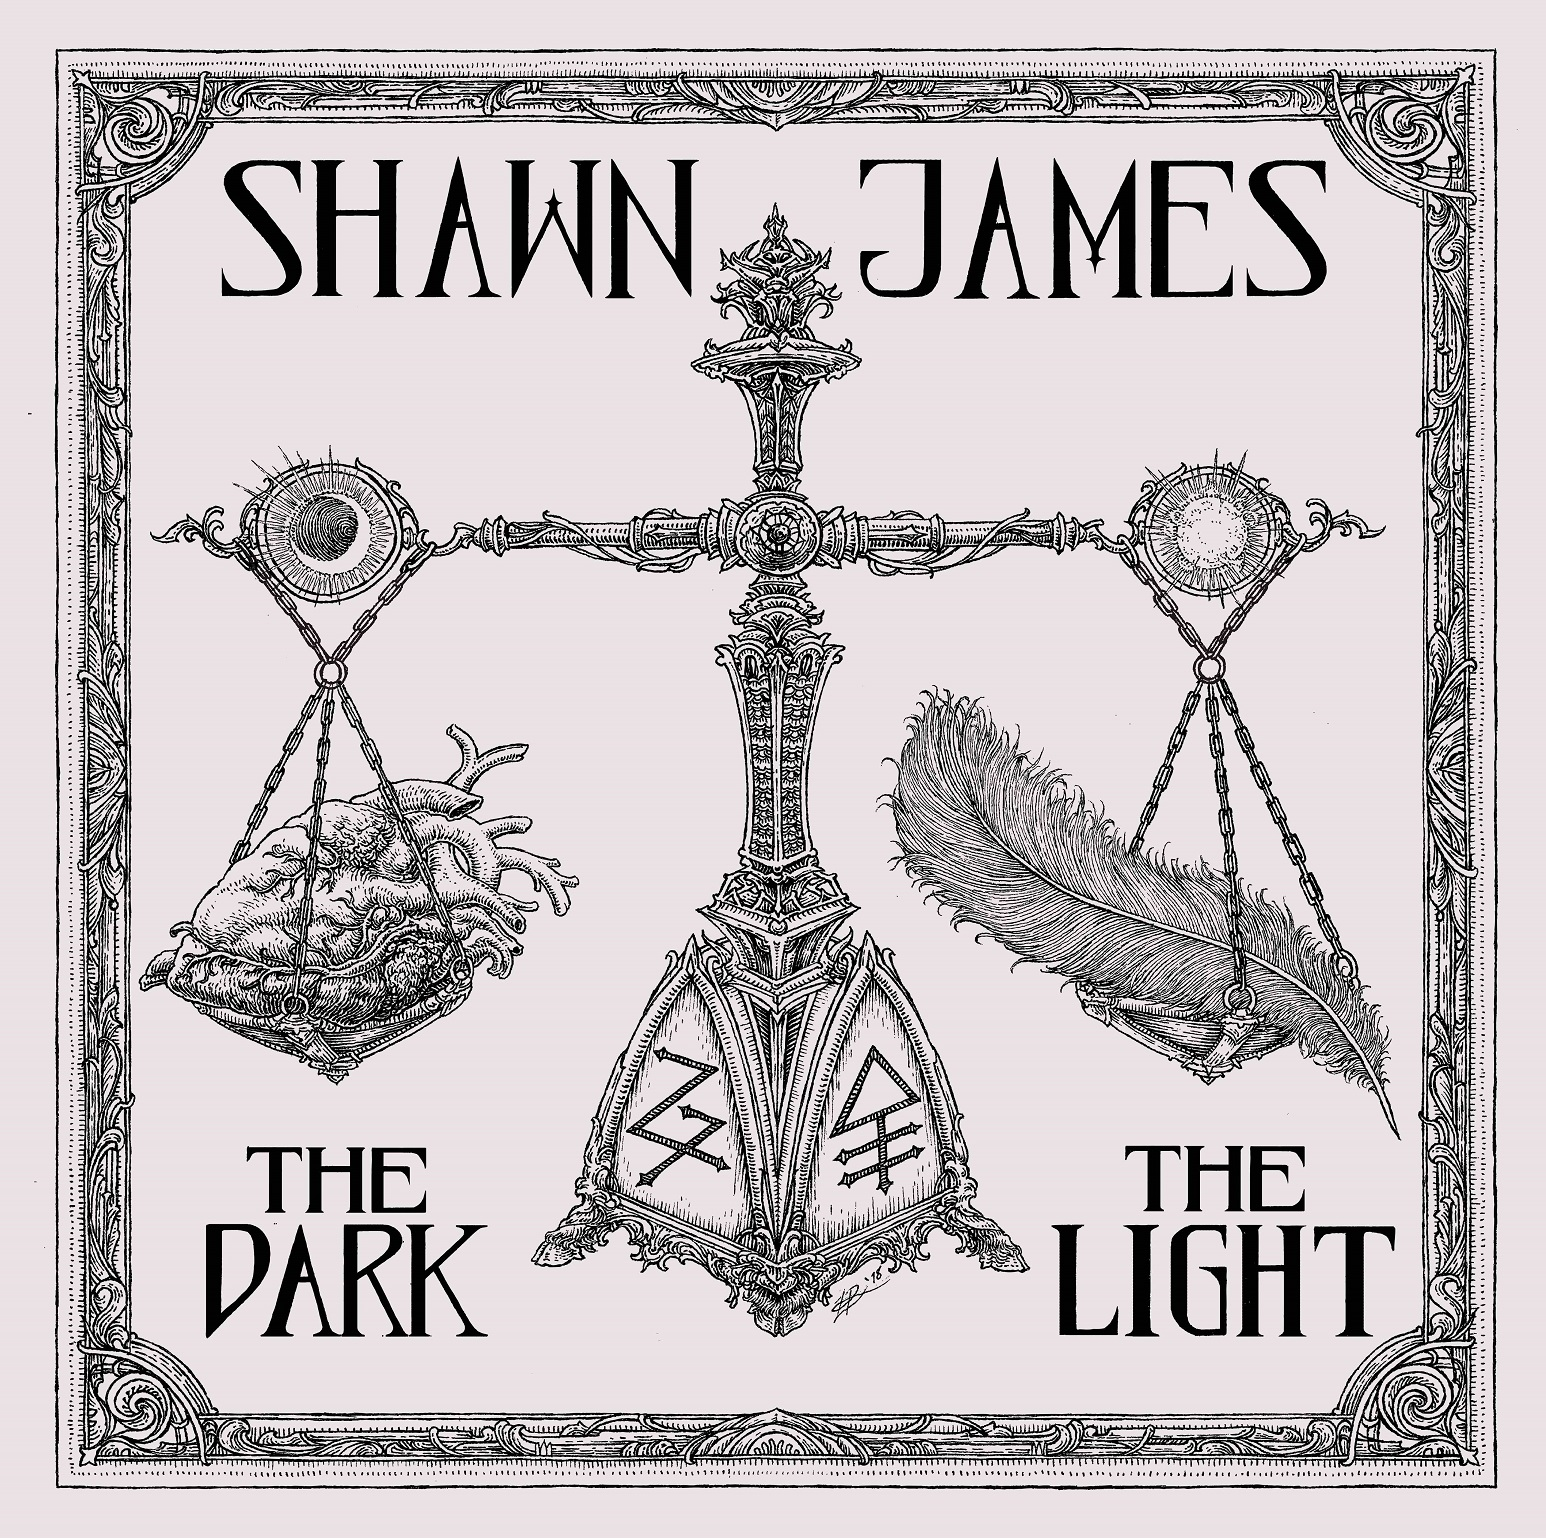 SHAWN JAMES TOUR DATES ANNOUNCED IN SUPPORT OF UPCOMING